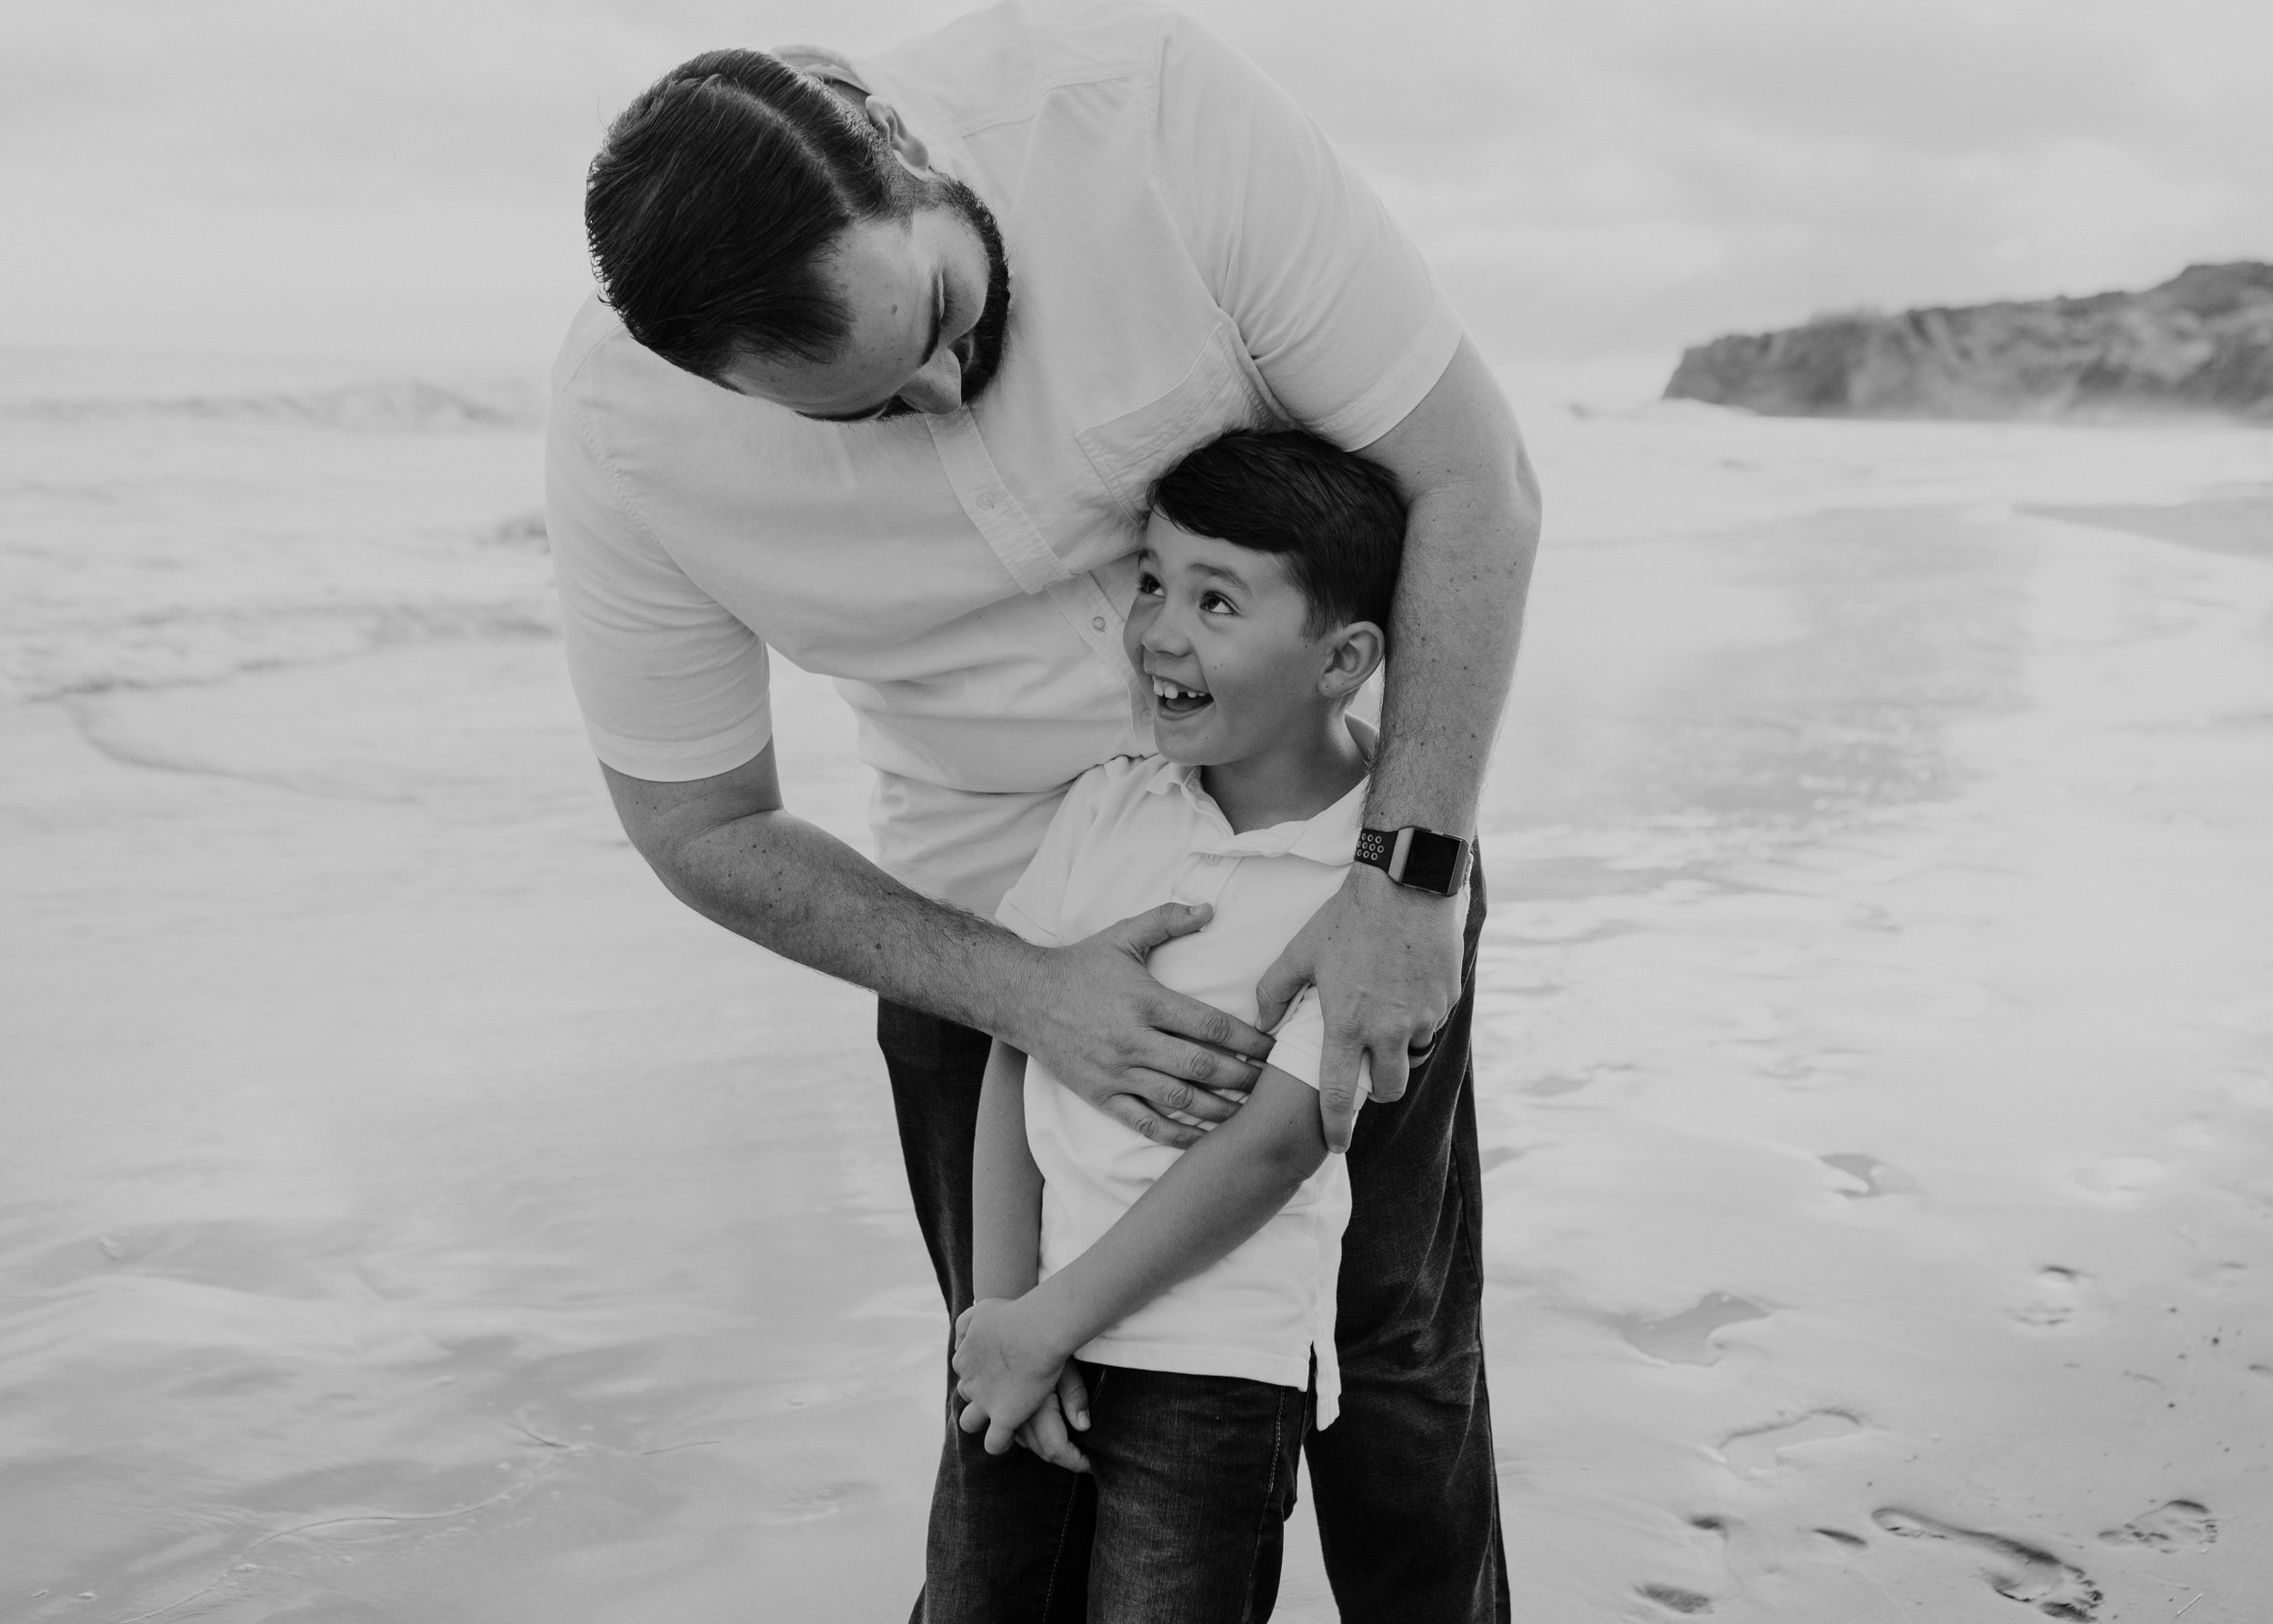 The Mitchell Five: Newport Beach, CA family photoshoot. - You have to see this kid to believe it!